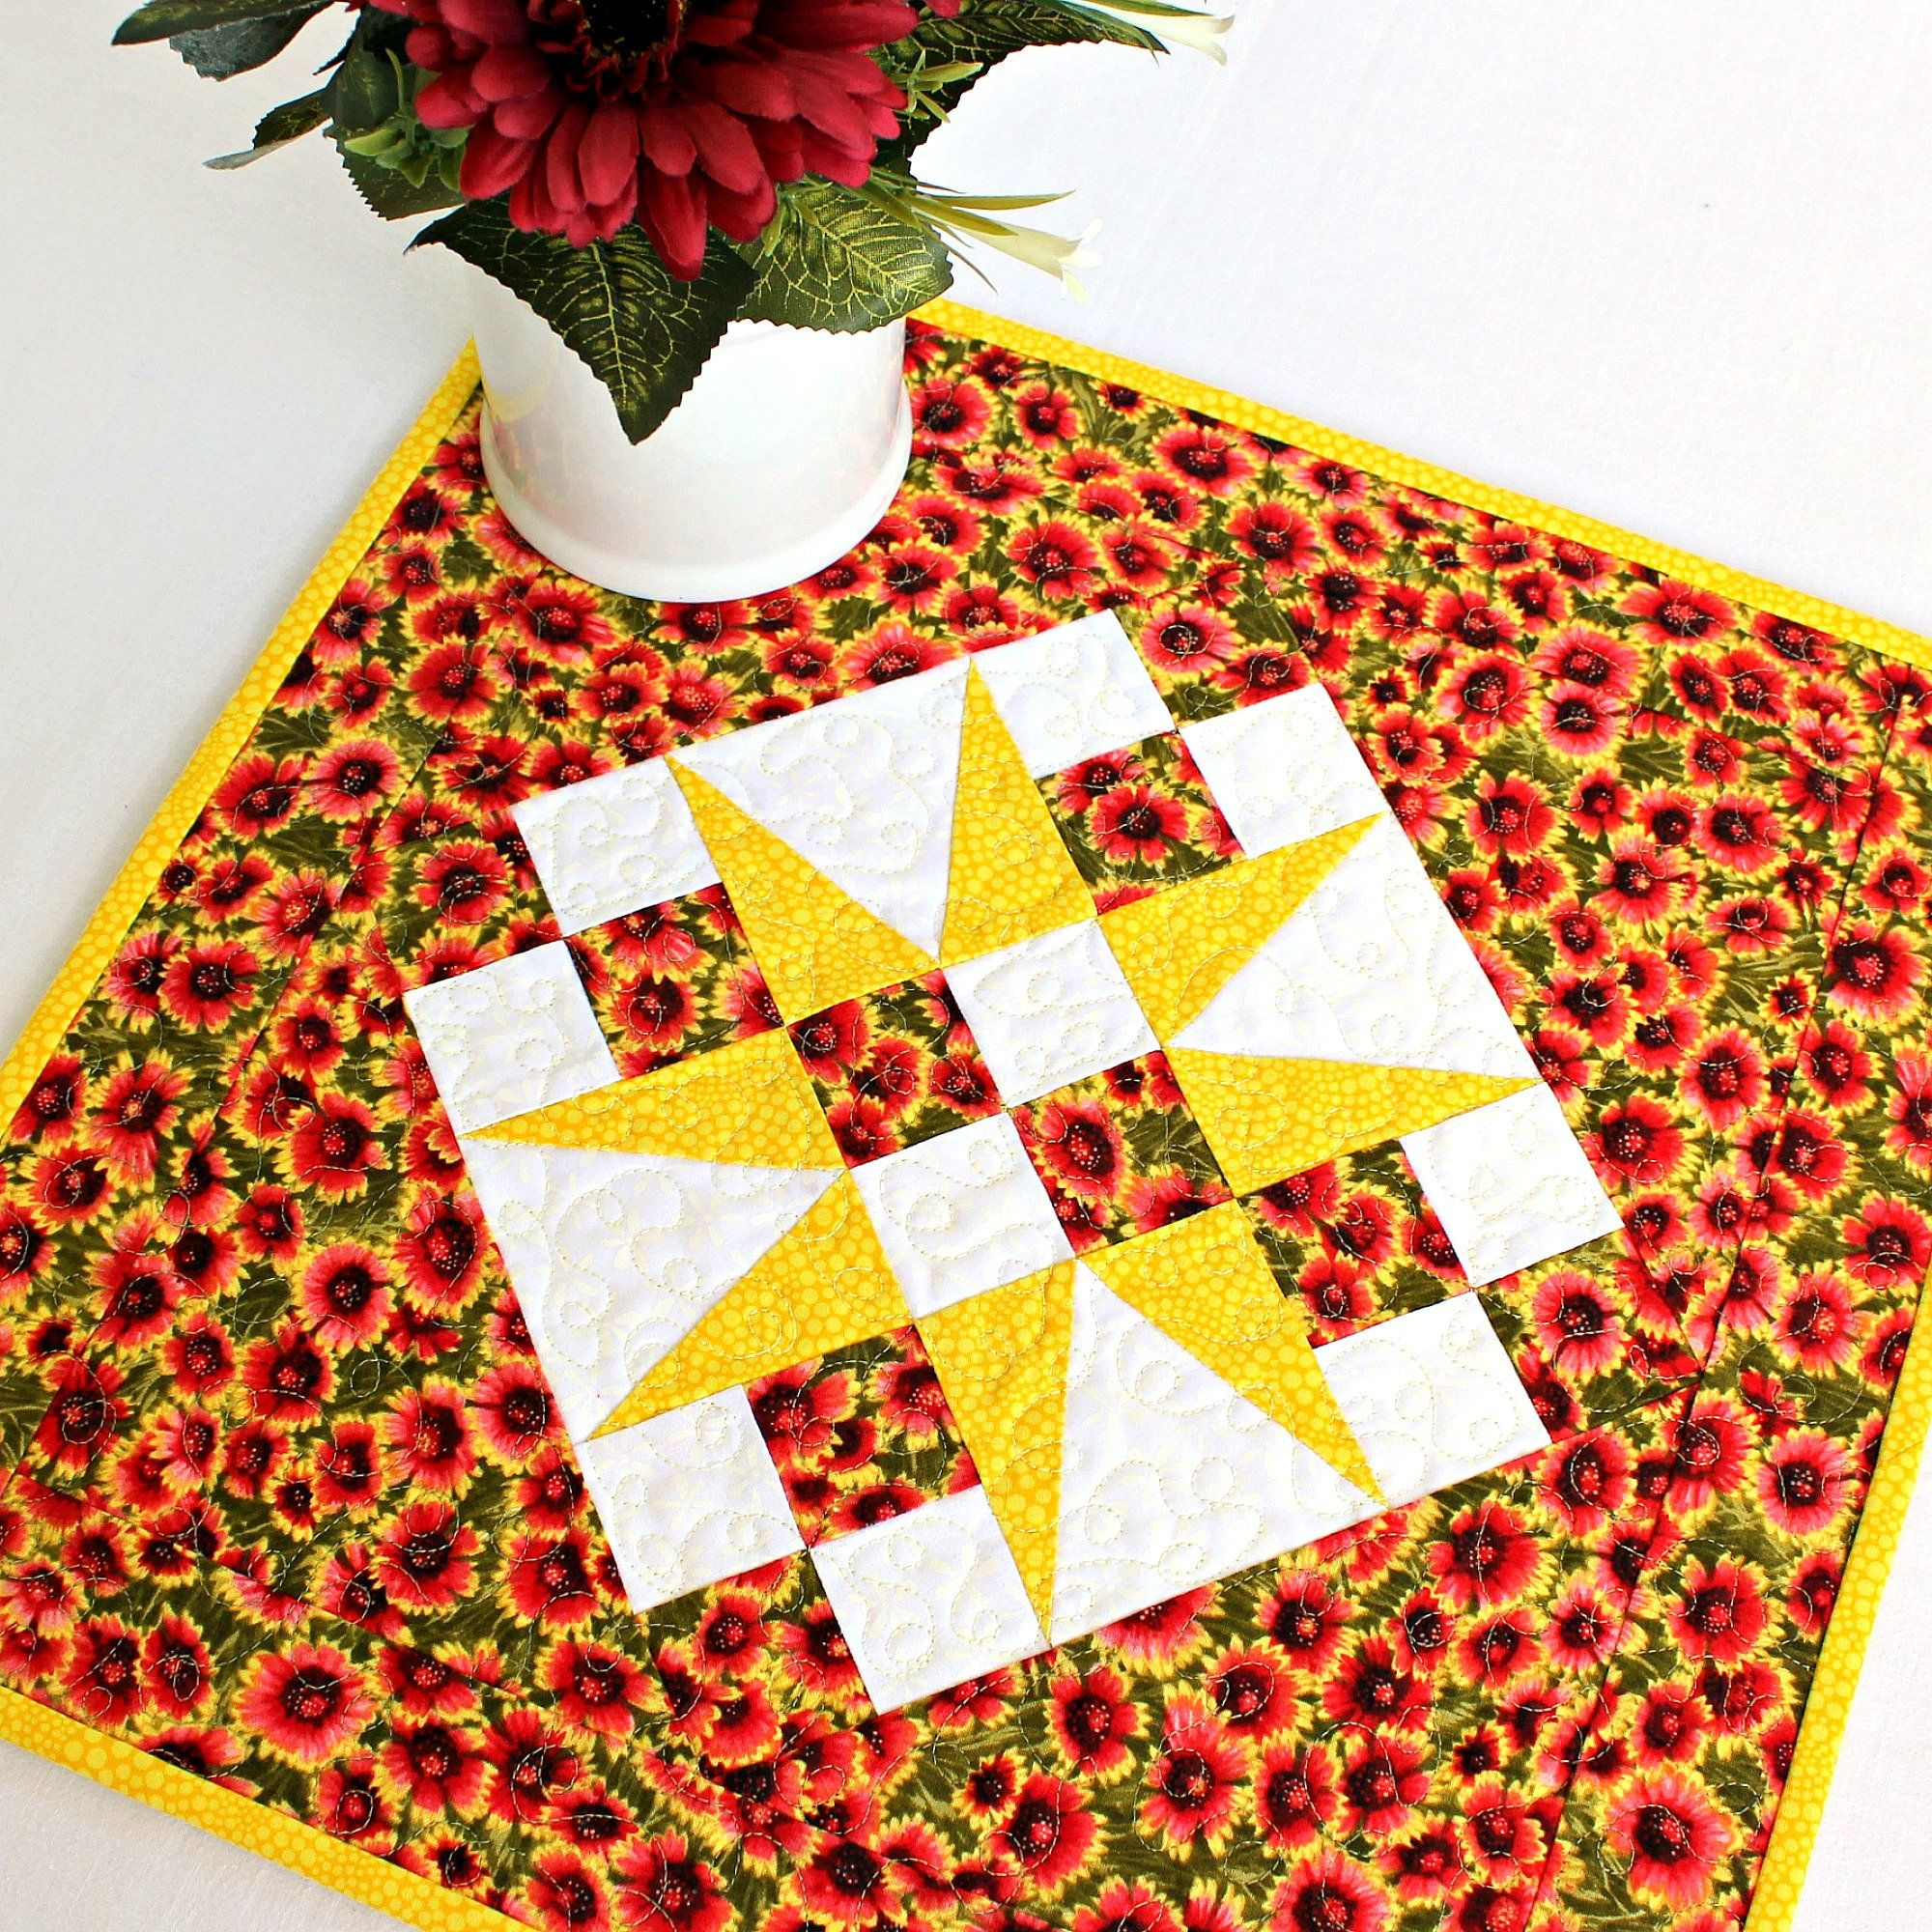 Quilted Table Topper Firewheel Flowers Etsy in 2020